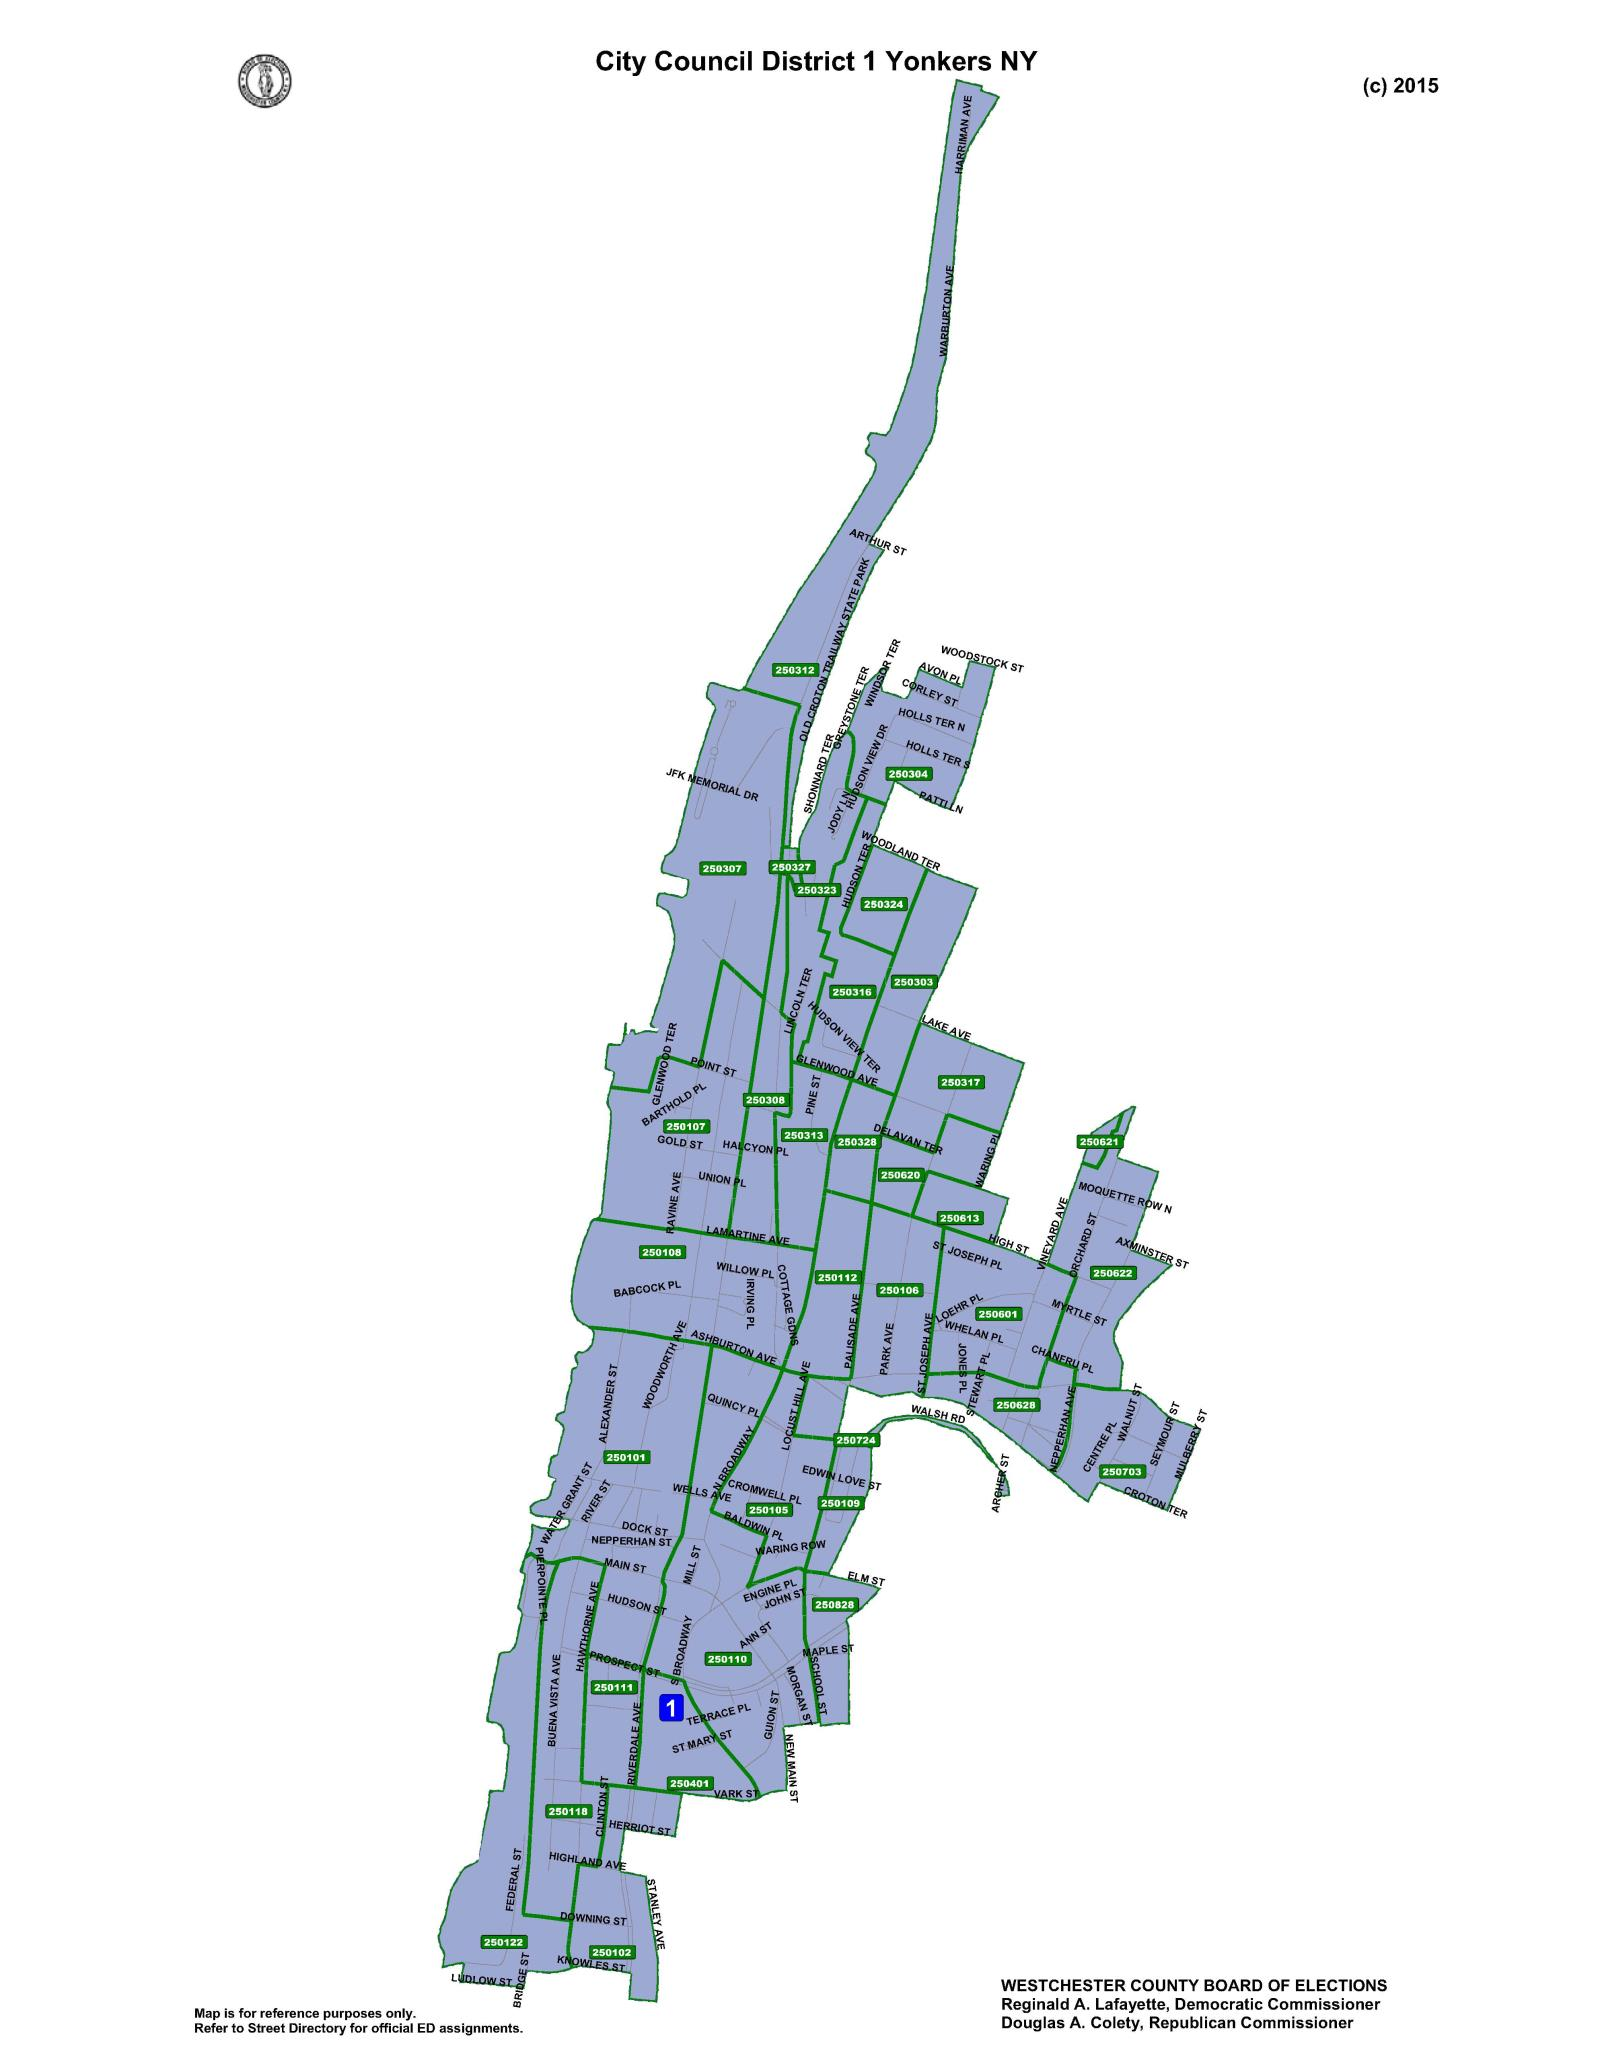 City Council Districts | City of Yonkers, NY on city of seattle boundary map, city of council bluffs map, city of baltimore maryland map, city map of pittsburgh before consolidation, city line map of los angeles,